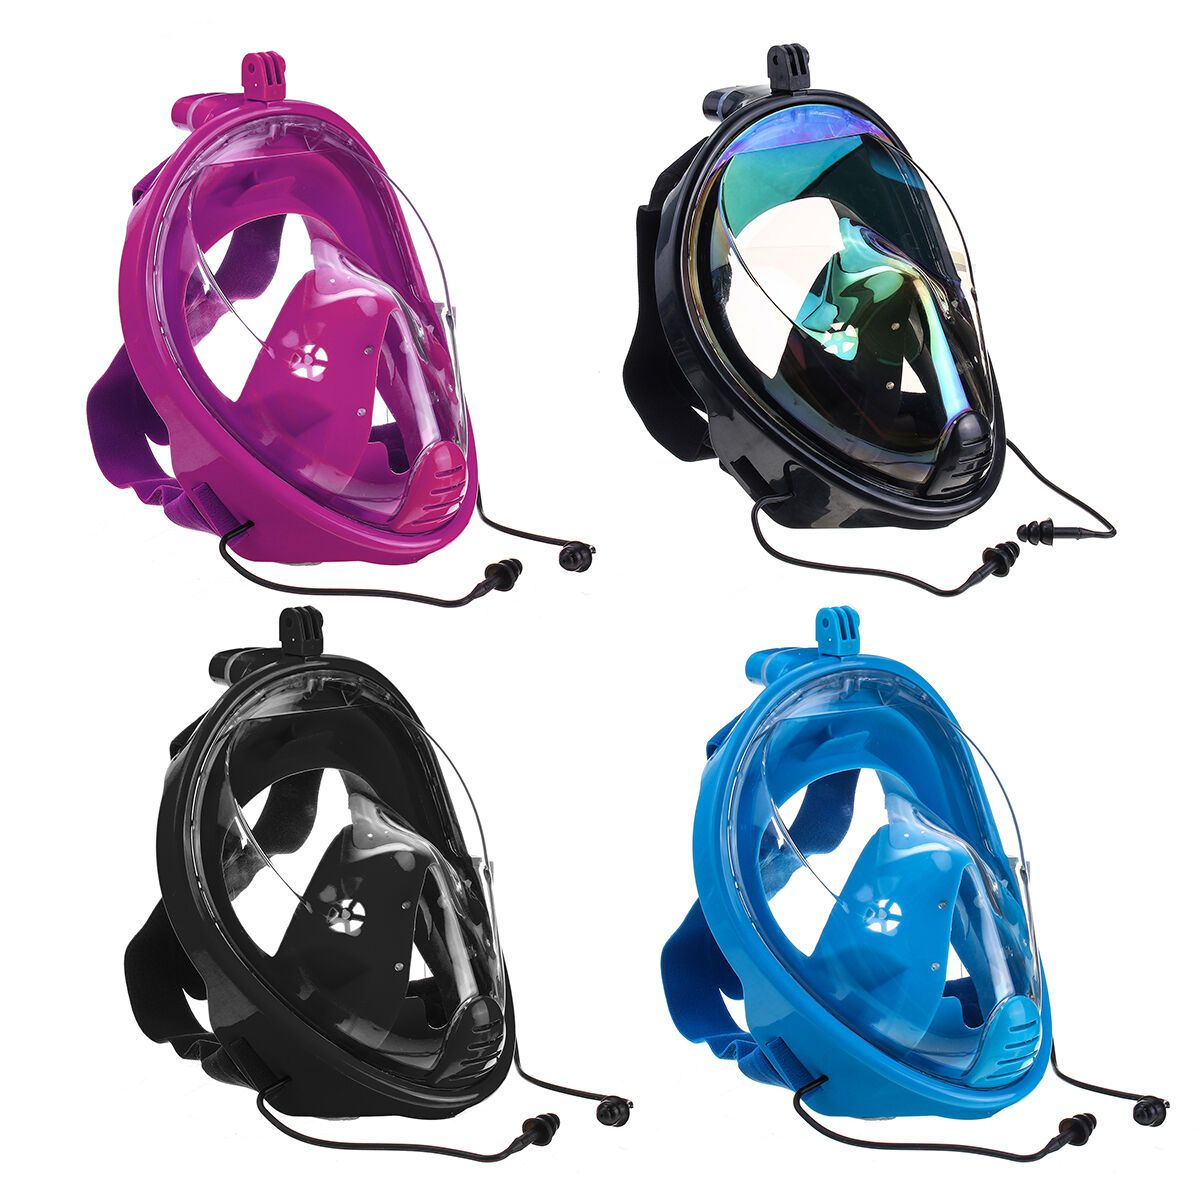 Diving Mirror Snorkeling Mask Rainbow Silicone Breathing Tube Diving Mask